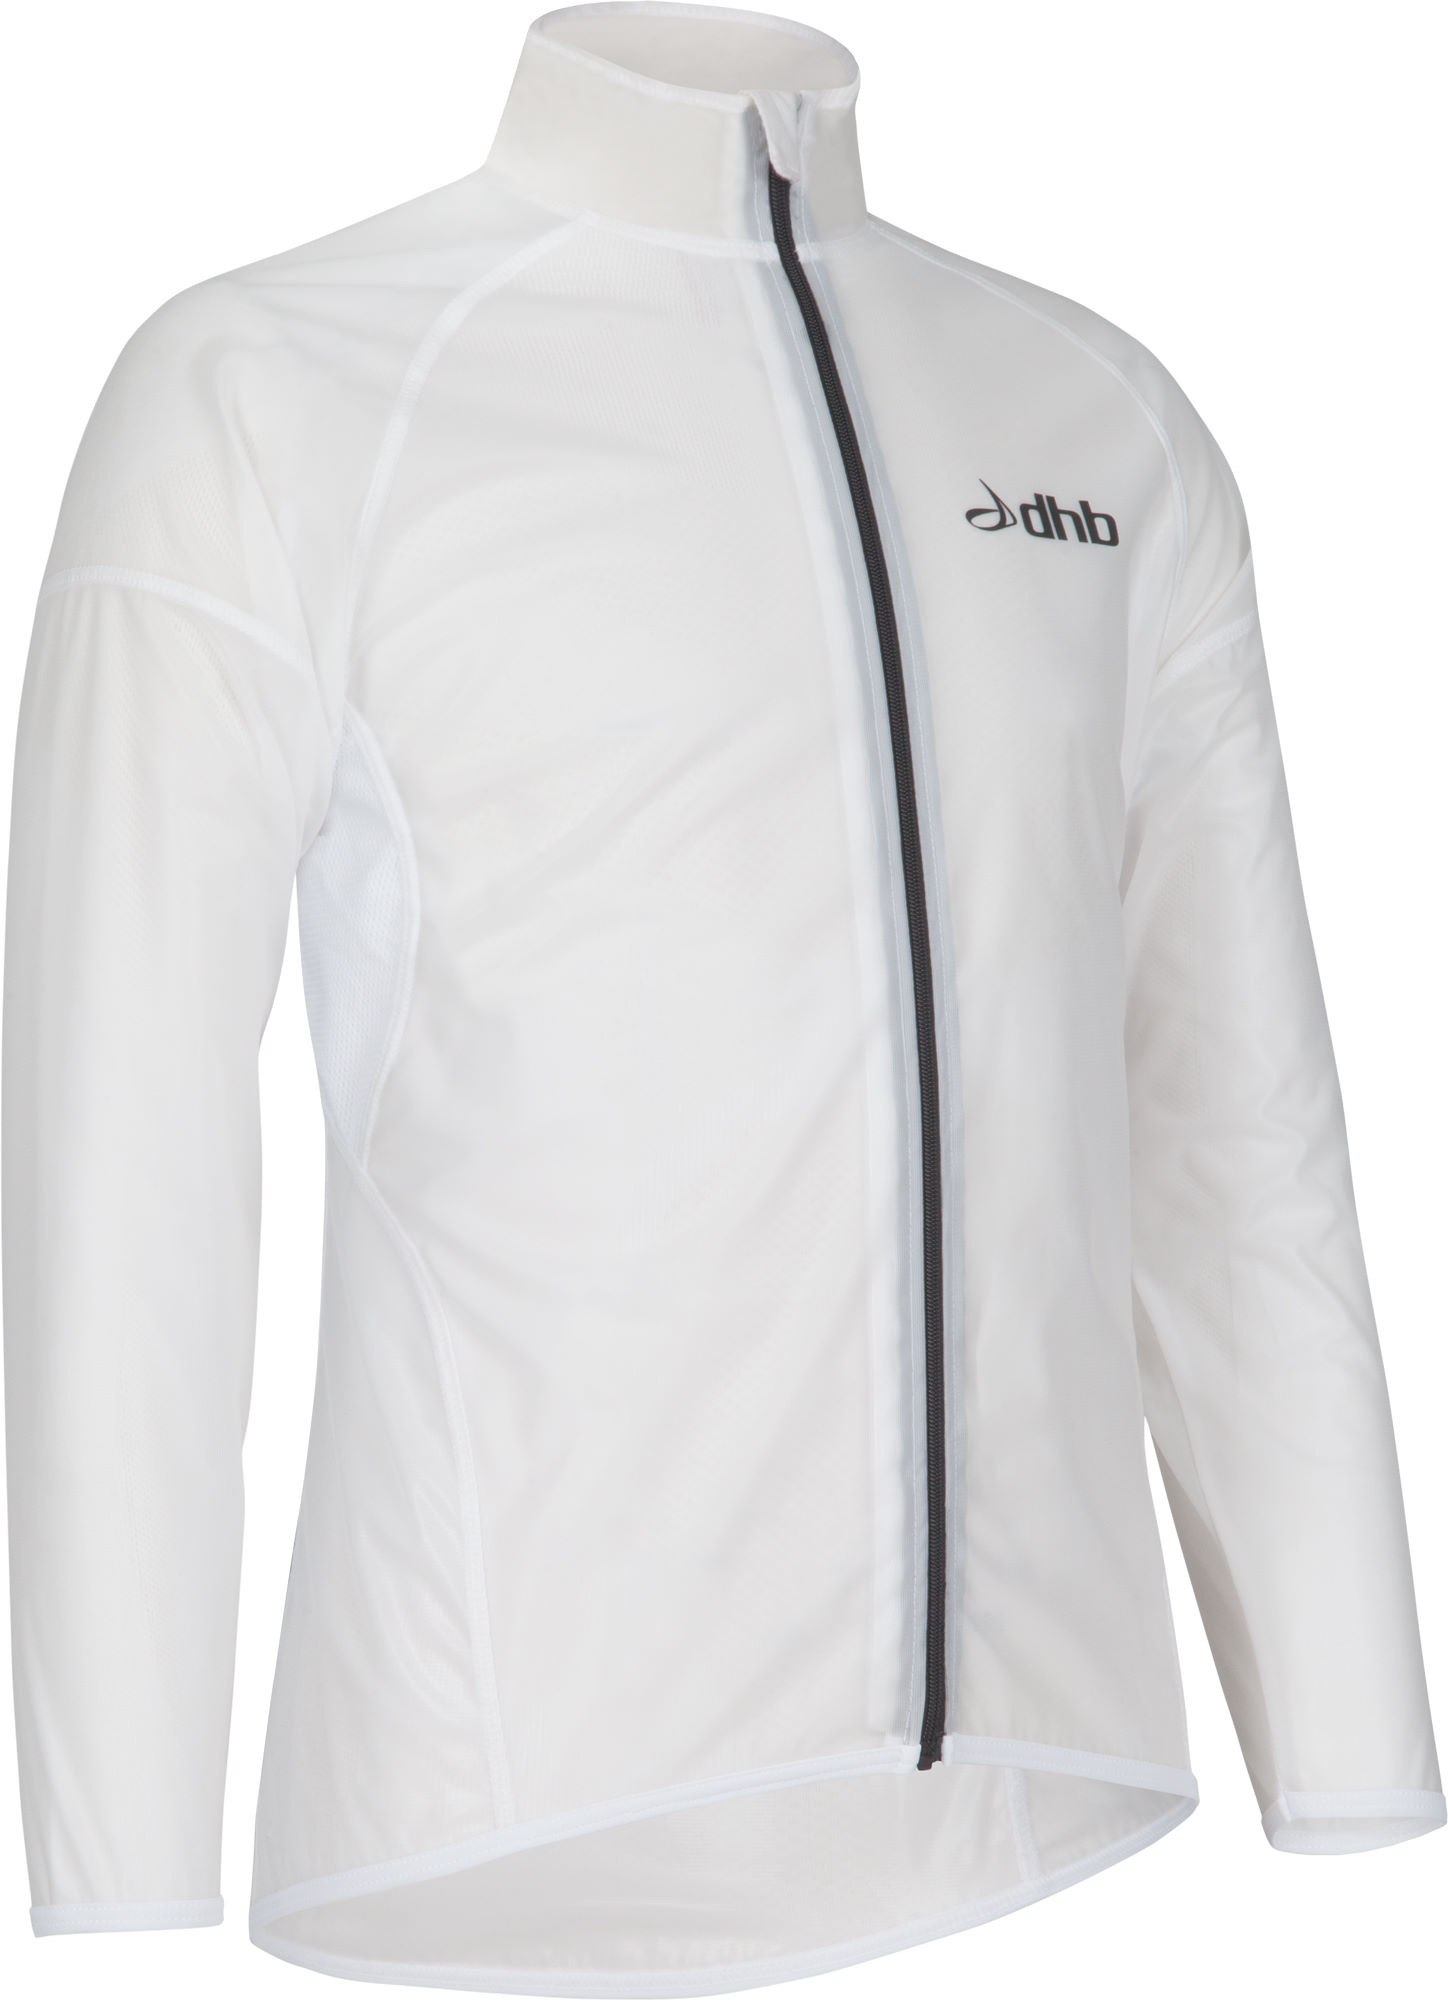 dhb Youth Transparent Cycle Jacket   Age 14   16   Cycling Waterproof Jackets